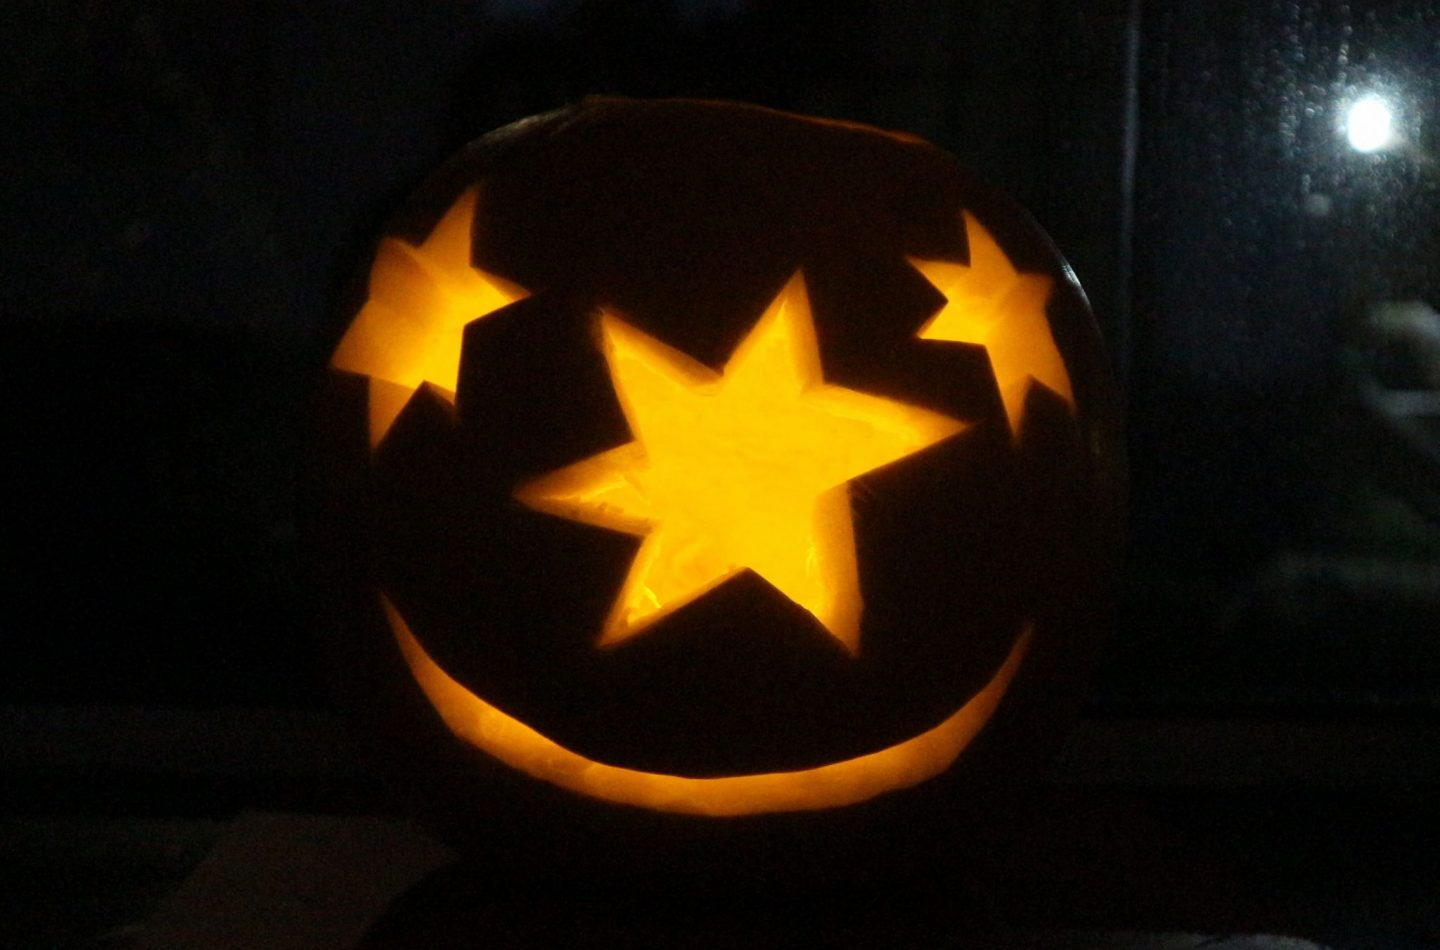 Basic star face pumpkin carving tutorial a life with frills for Pumpkin sculpting tutorial